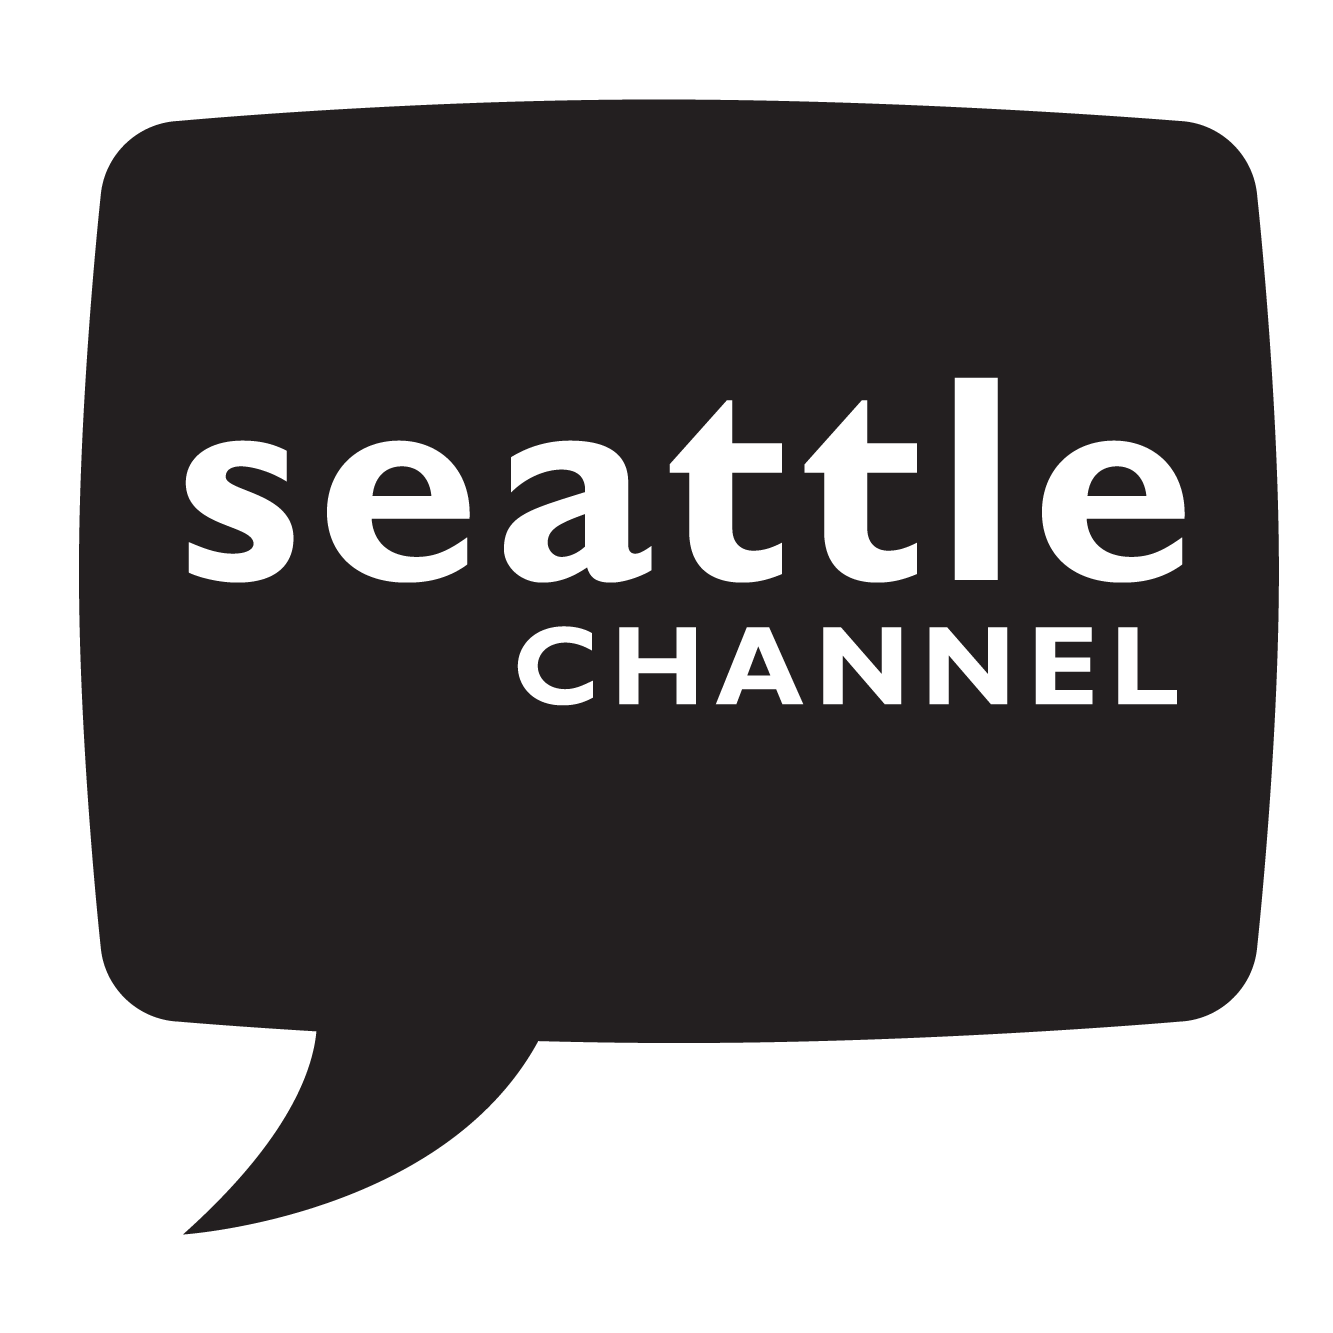 Seattle Channel black logo